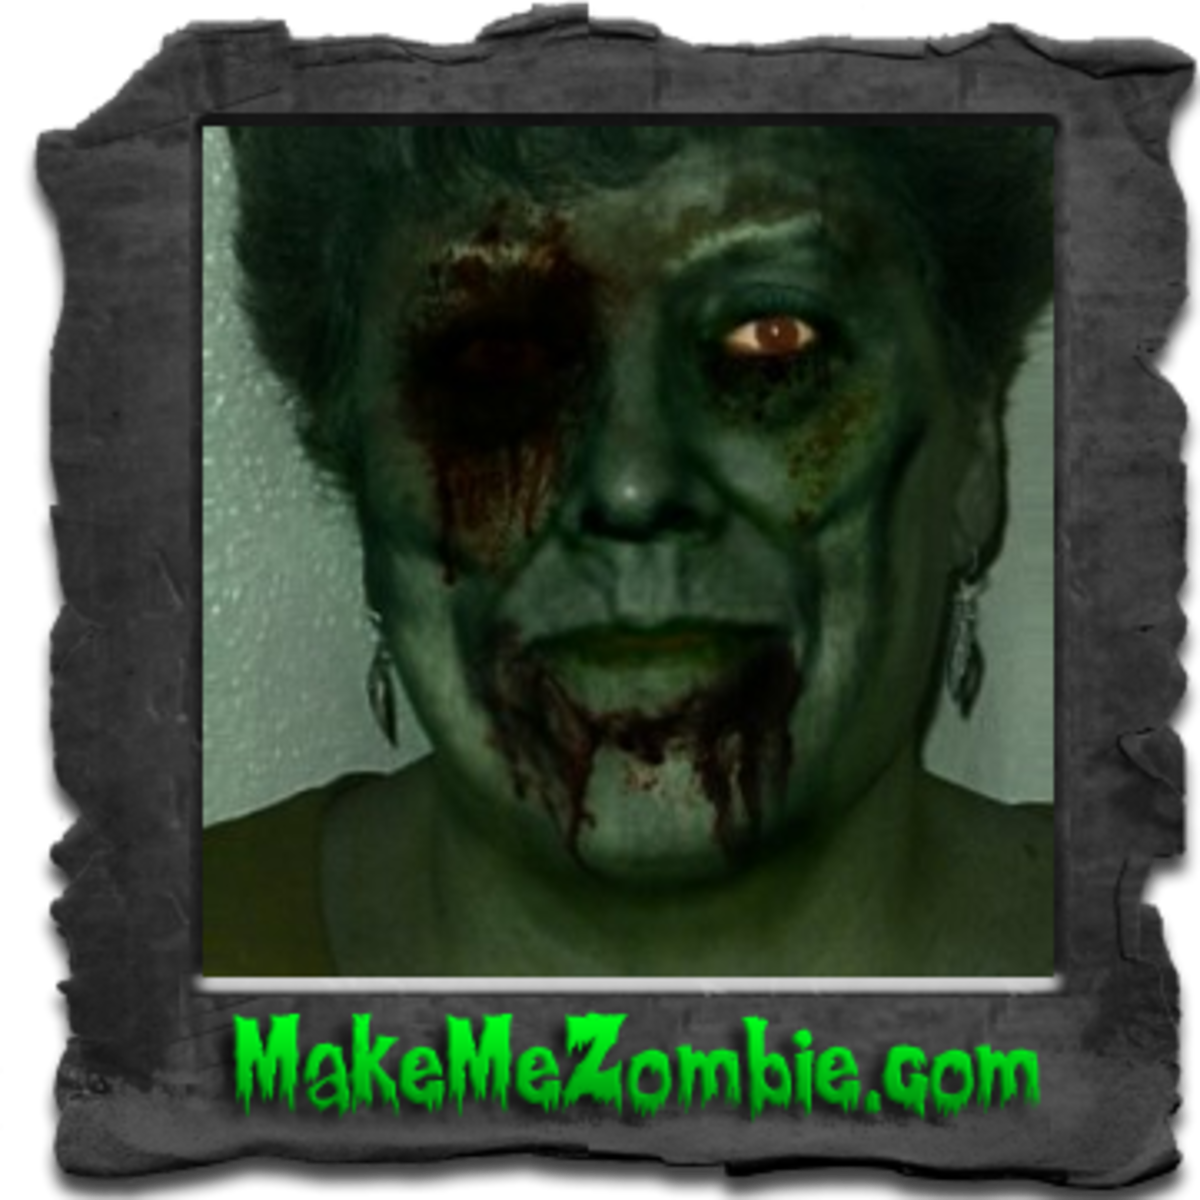 The author gets transformed into a zombie. Actually, this is just how I look when I haven't had my morning coffee yet.